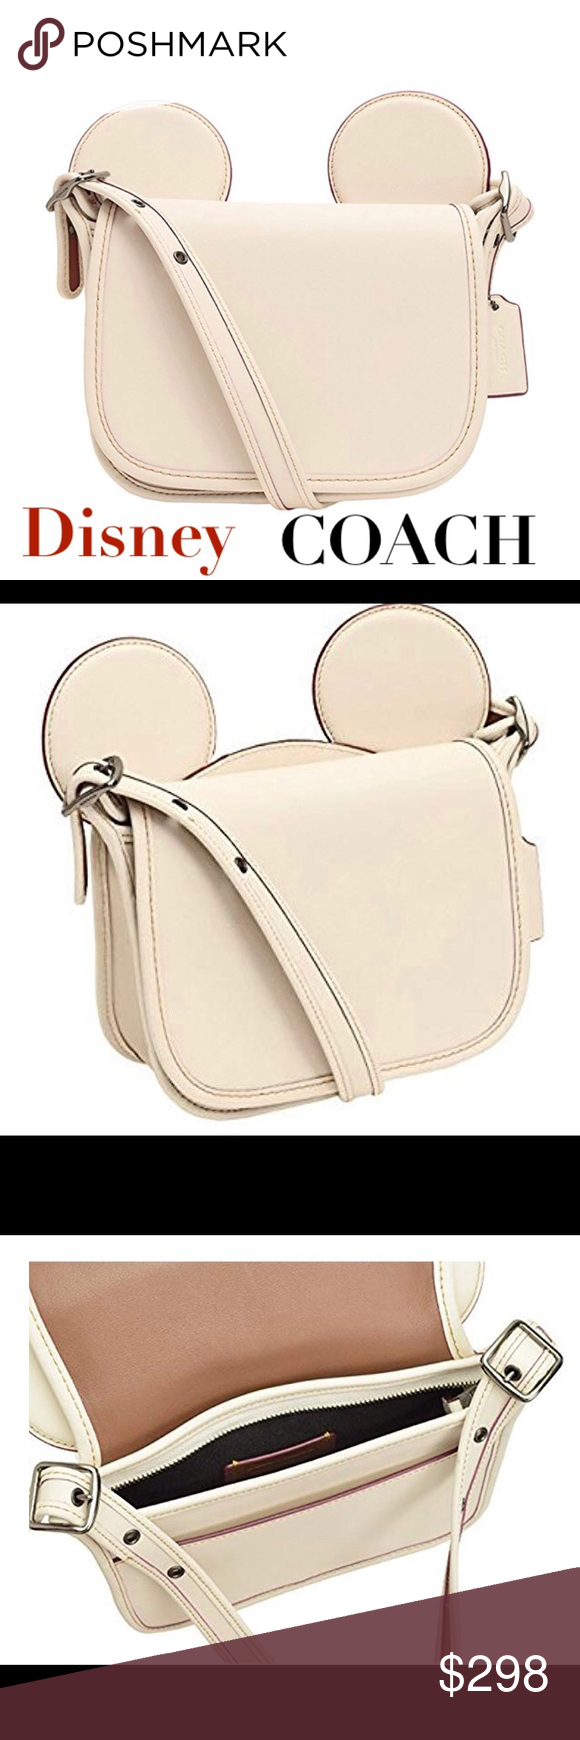 a26a736d COACH DISNEY PATRICIA SADDLE WITH MICKEY EARS BAG ❤️❤️ AUTHENTIC ...